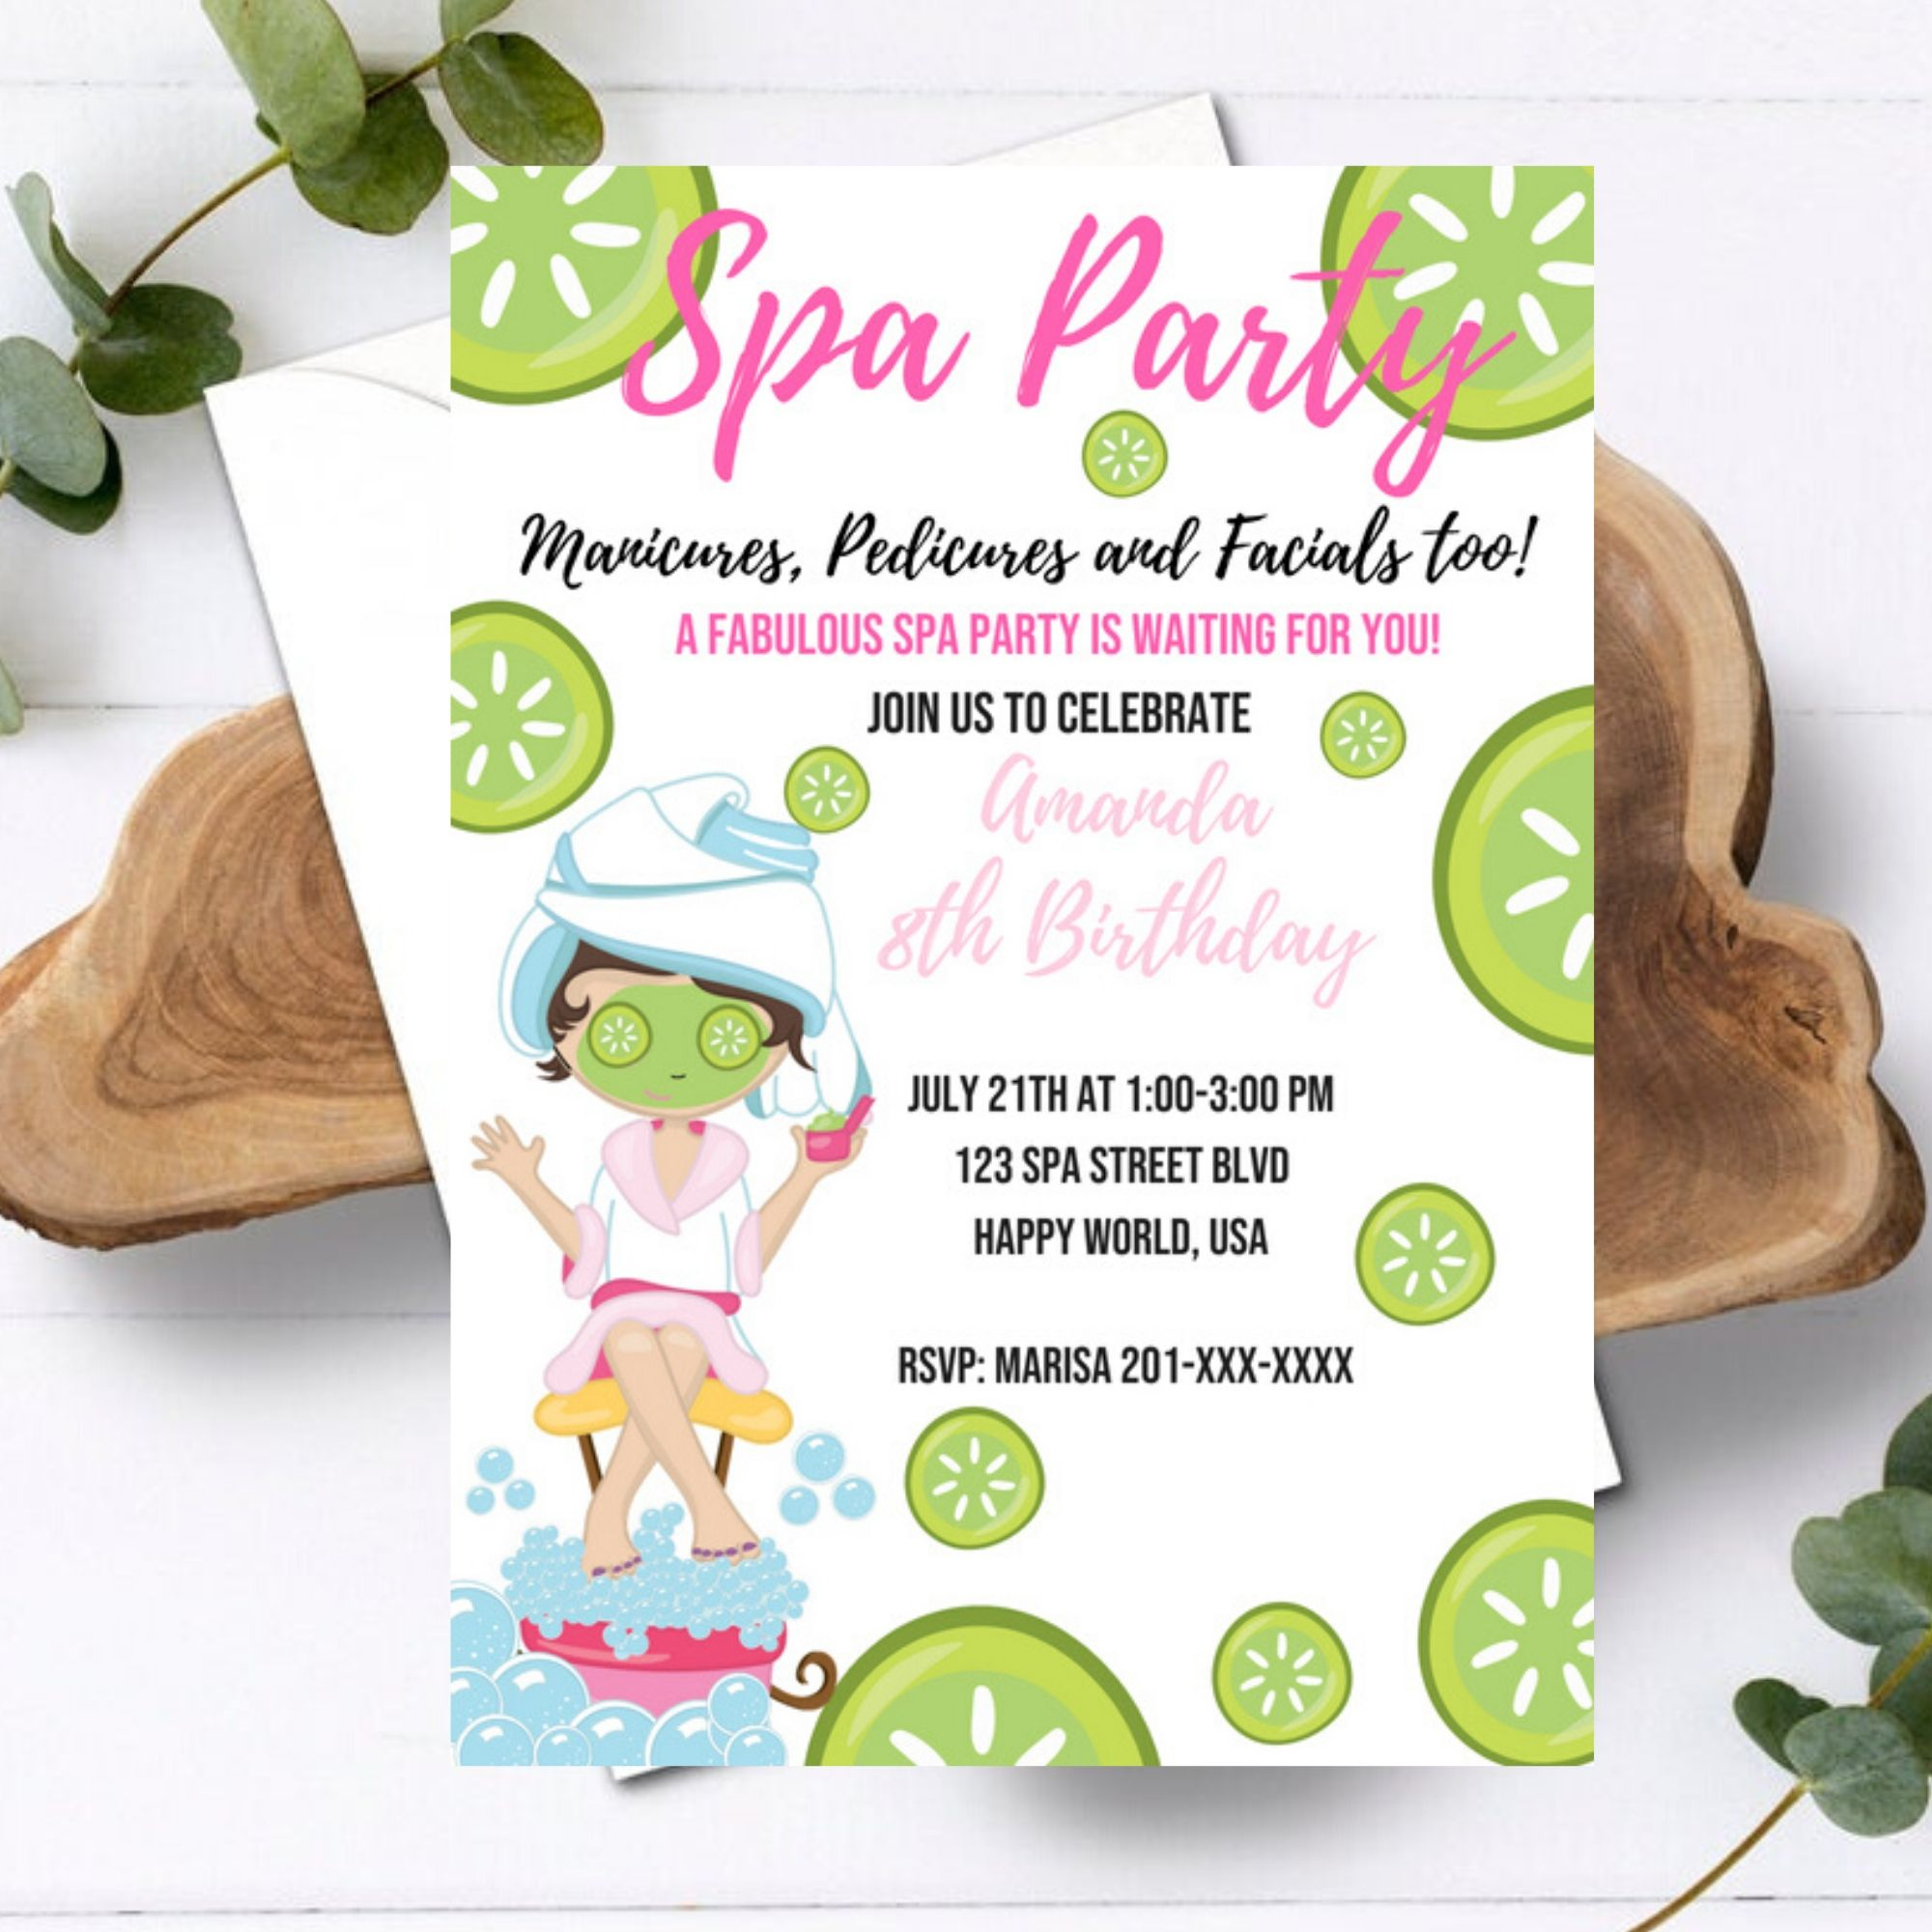 FREE PRINTABLE Manicures, Pedicures and Facial too! Spa Party Birthday